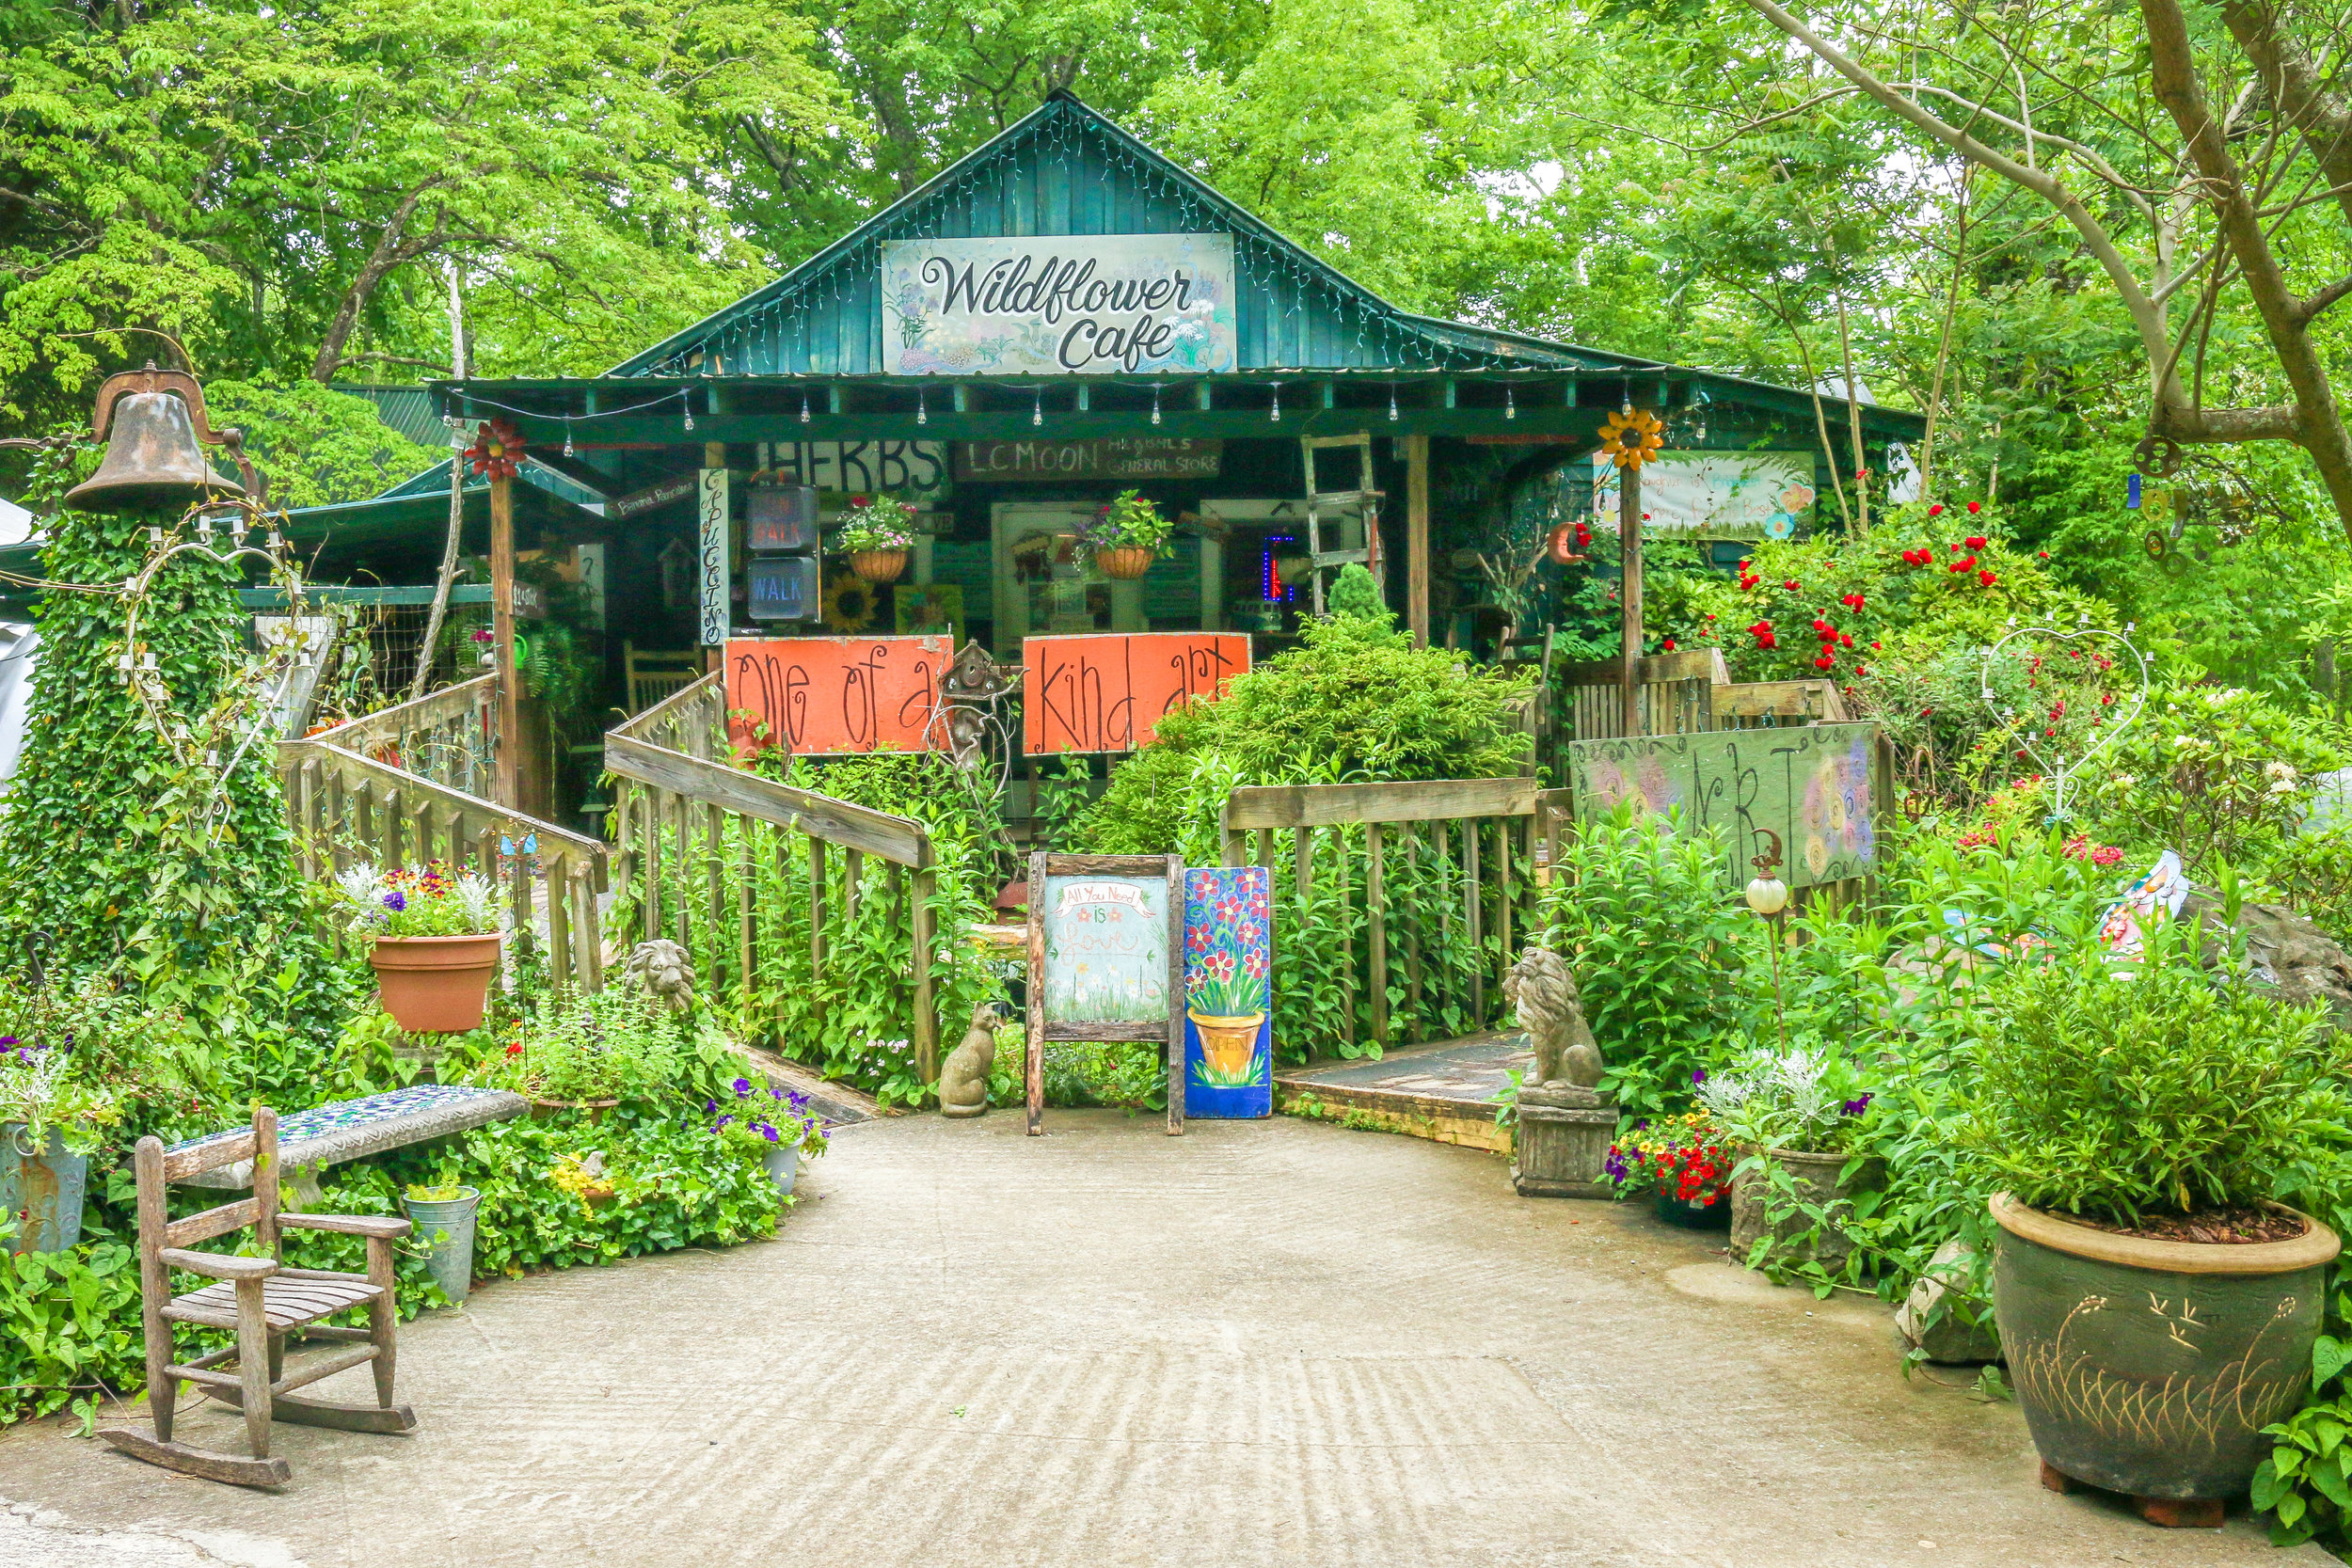 Wildflower Cafe in Mentone